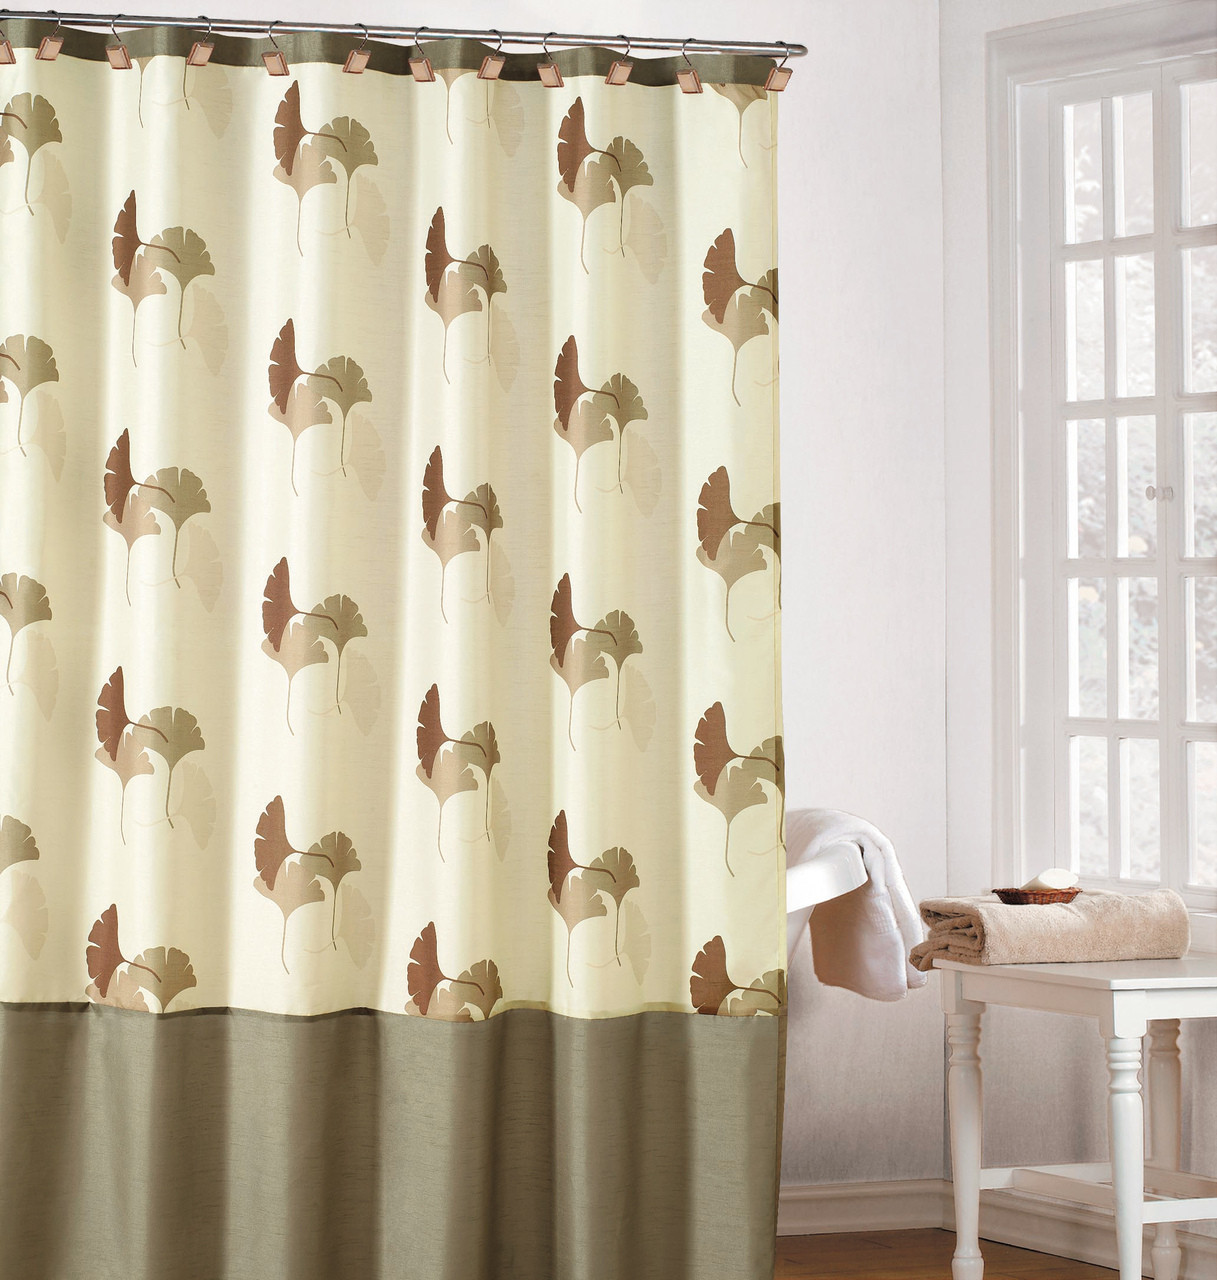 Earthy Cream Color Fabric Shower Curtain With Brown Taupe And Beige Gingko Leaf Design